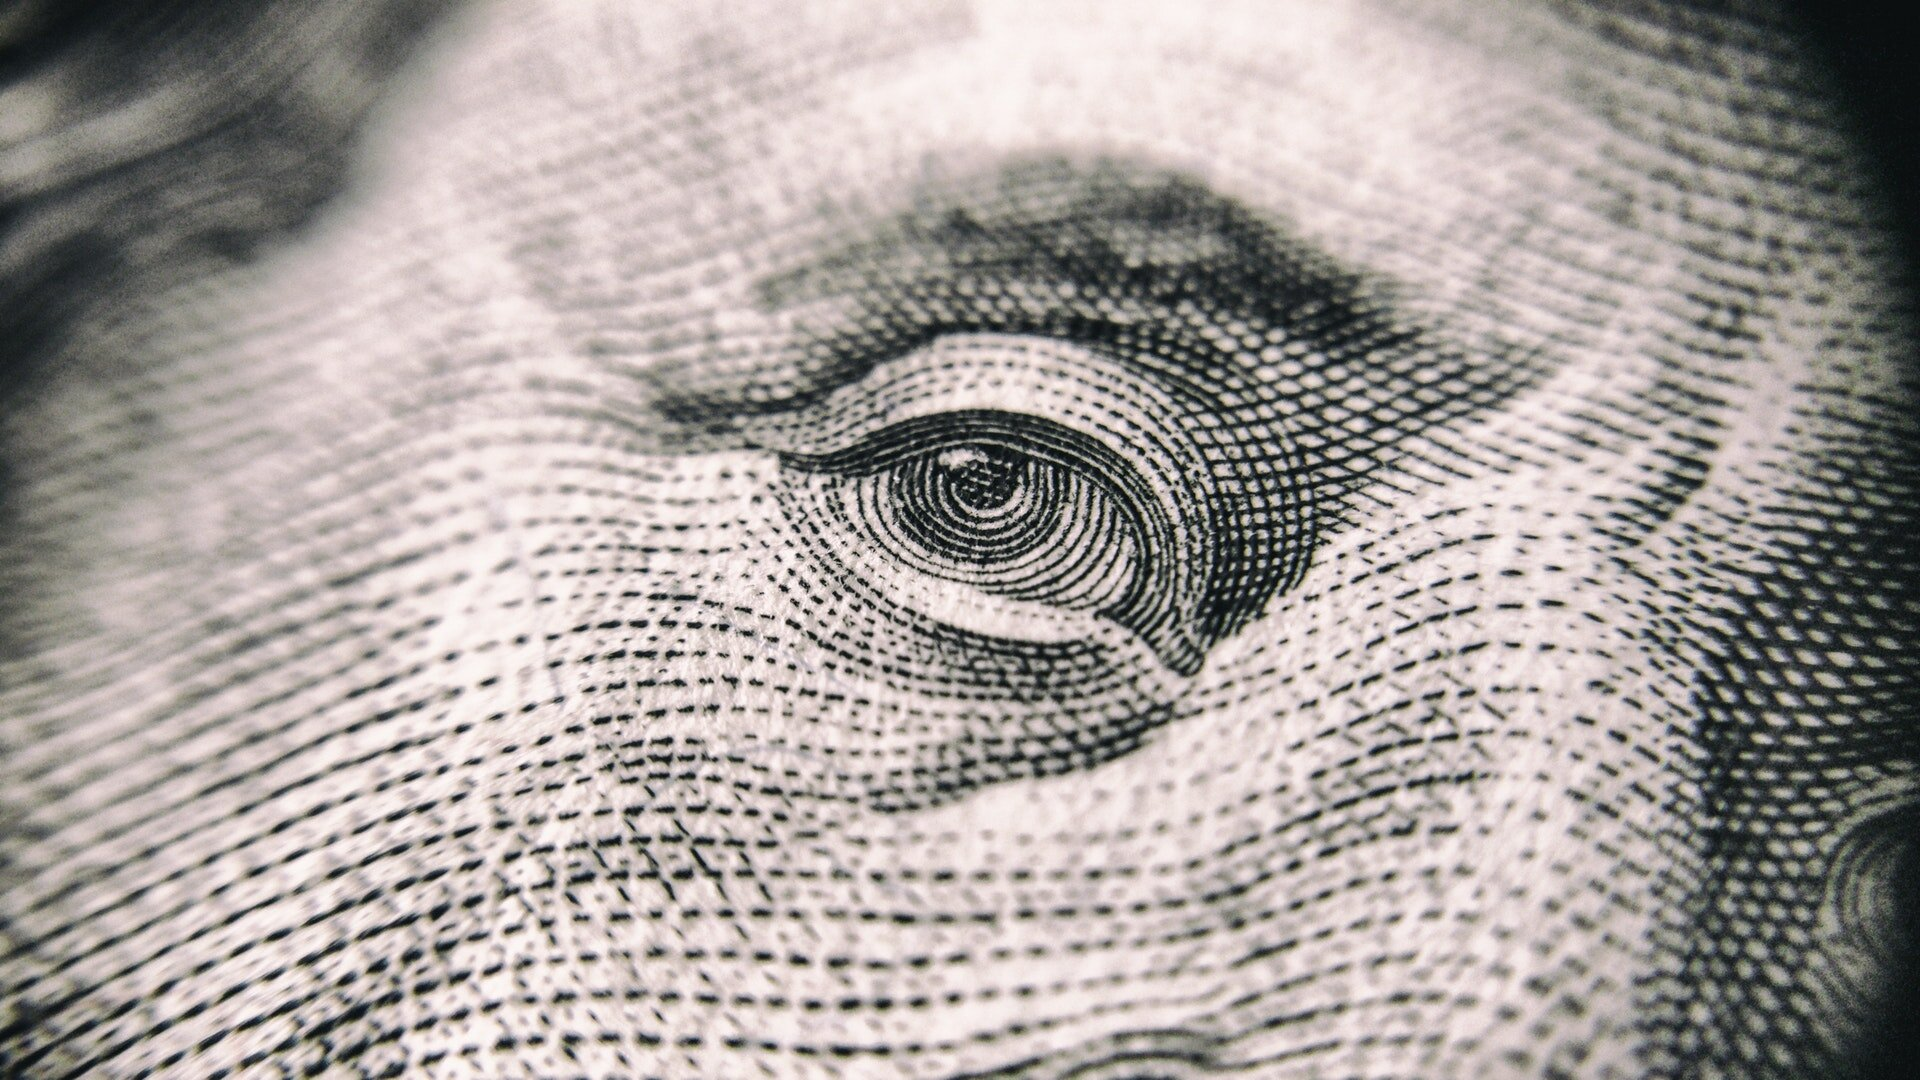 A close up of an eye from a $100 bill. Photo by Vladislav Reshetnyak from Pexels